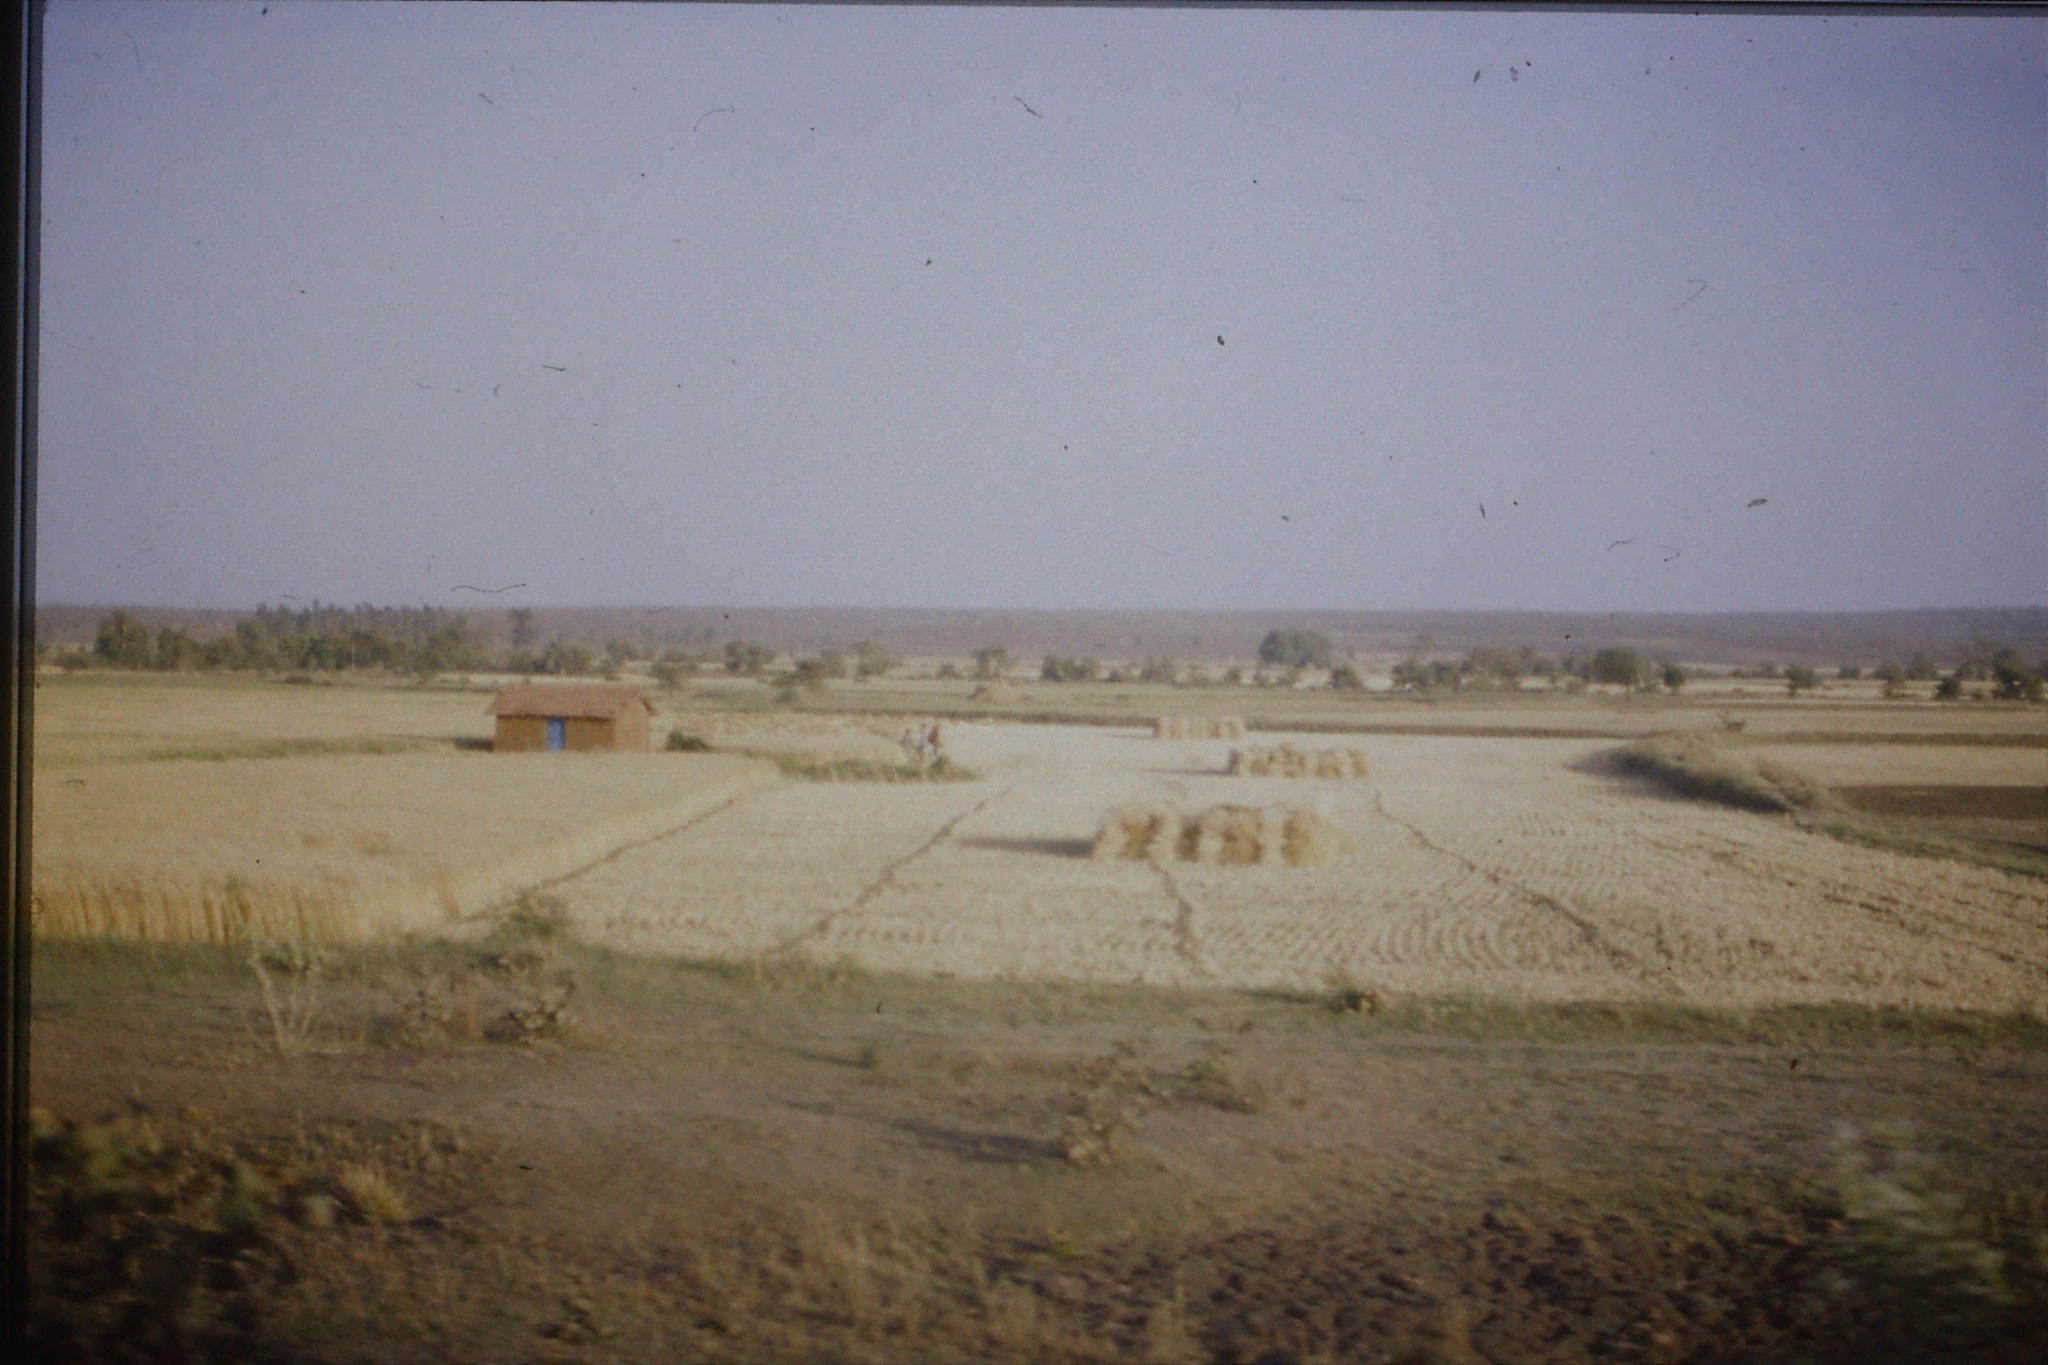 108/31: 24/3/1990 on train soon after Bhopal looking east